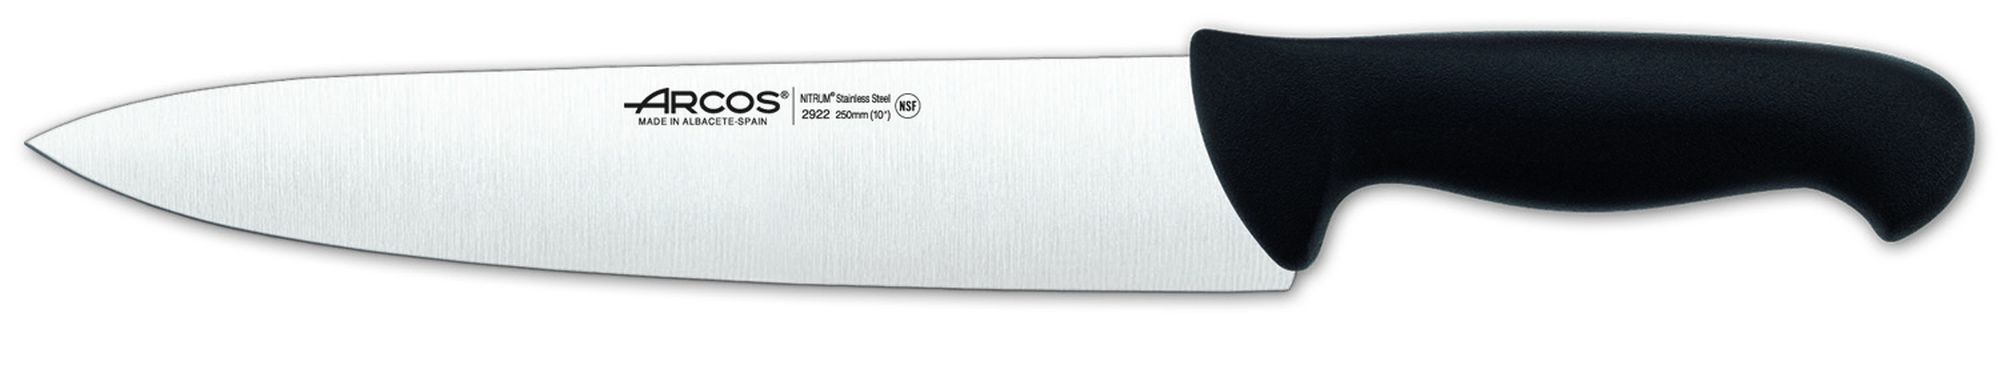 Chef�s Knife Arcos ref.: 292225